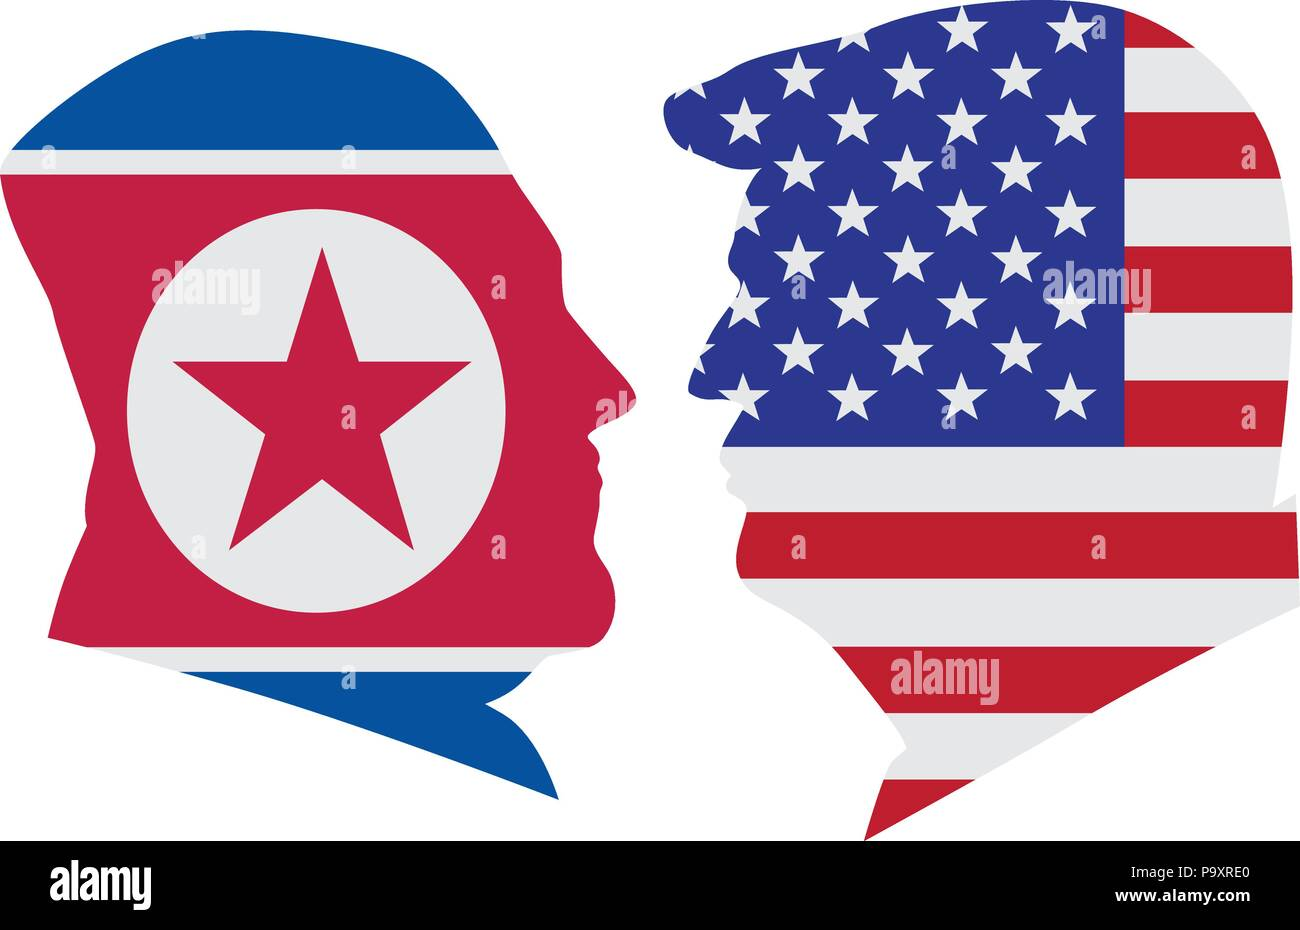 MAY 14, 2018: US President Donald Trump and Kim Jong Un silhouettes with United States America  and North Korea Flags Illustration. Upcoming Summit Ju Stock Vector